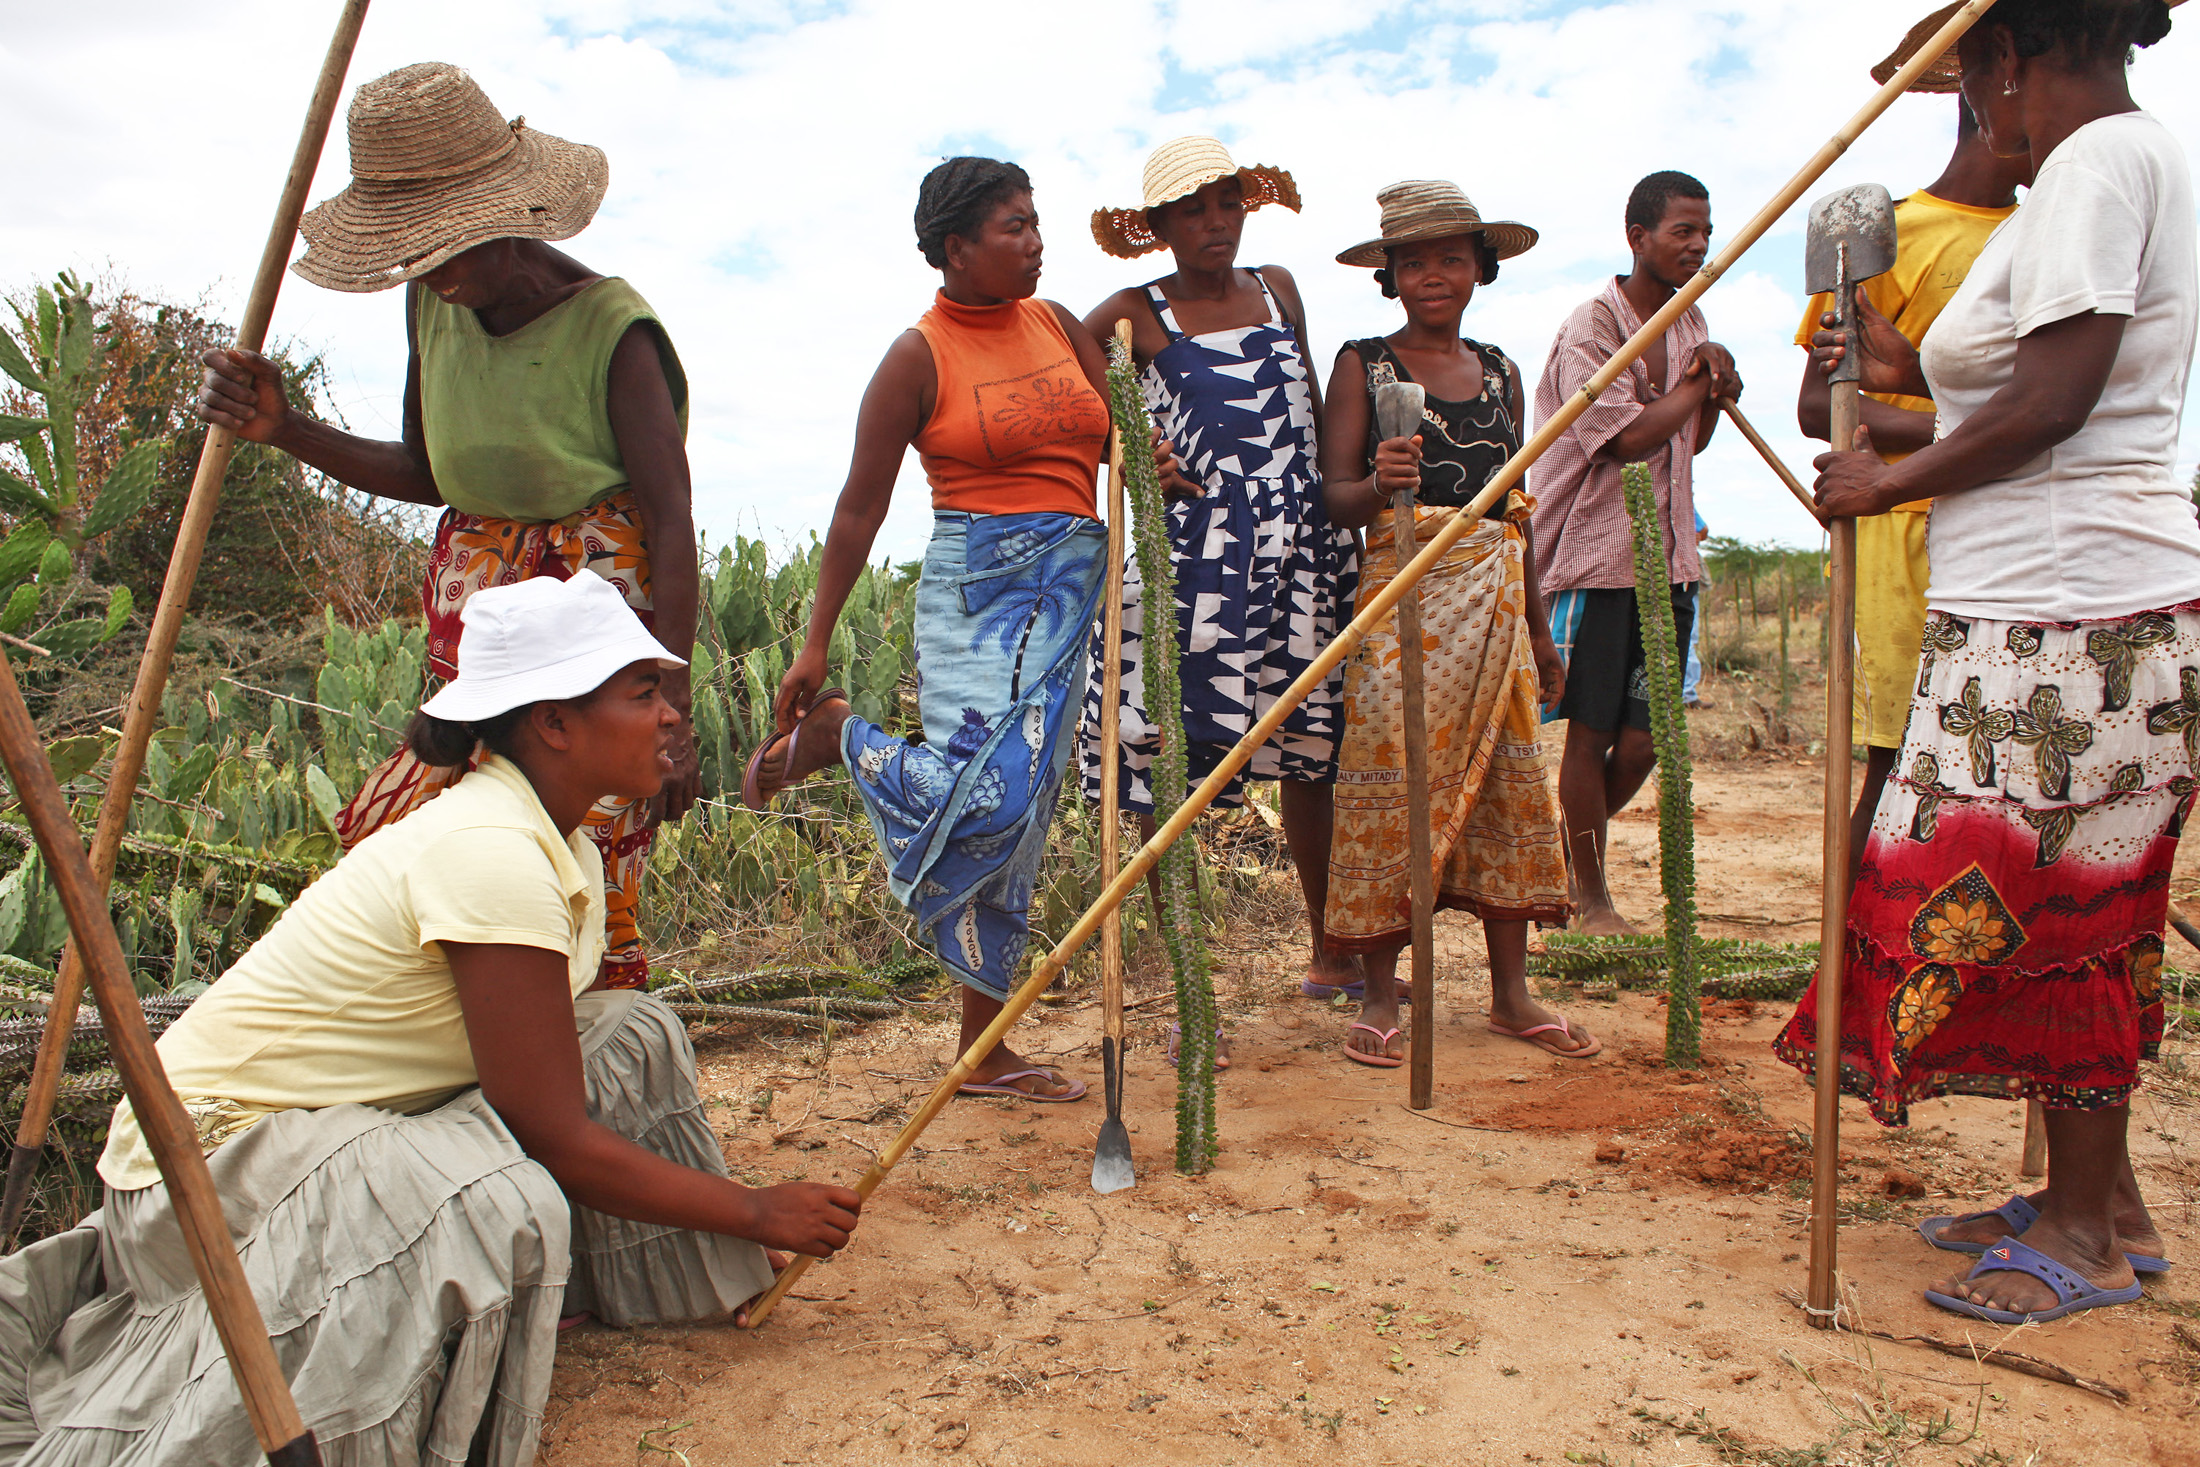 Villagers from Ankirikiriky in southern Madagascar are replanting deforested land in return for food rations from the World Food Programme